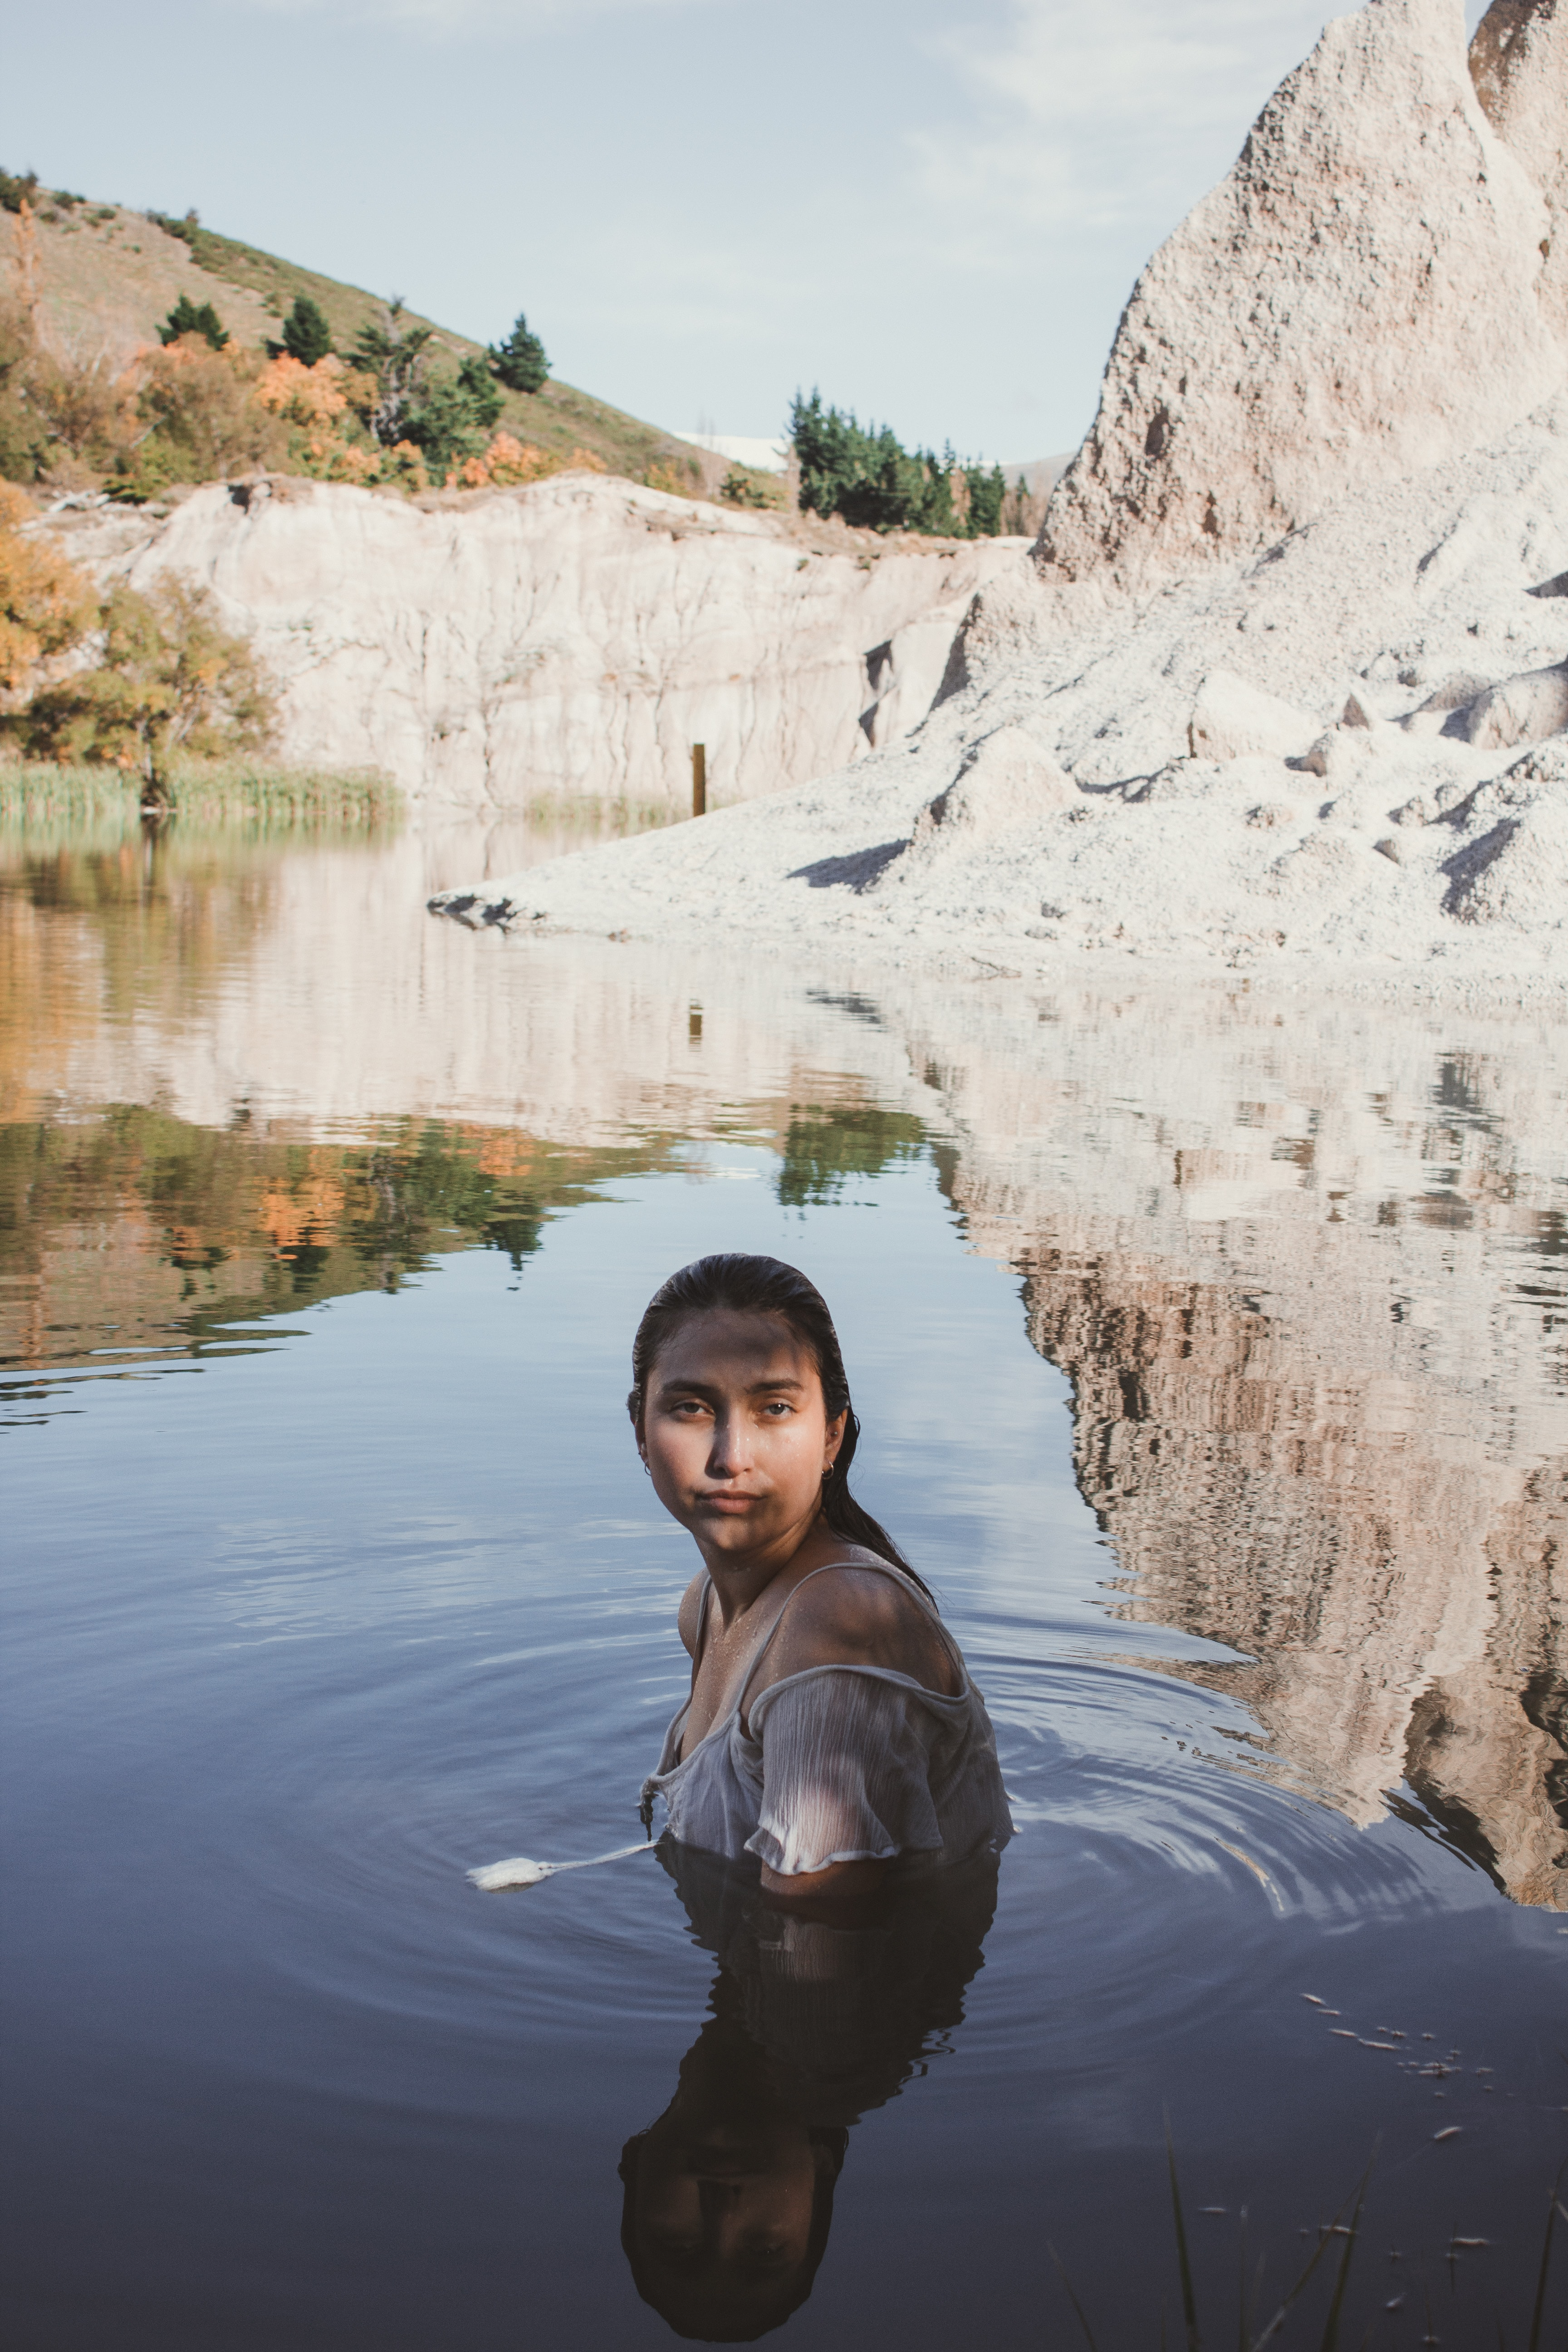 woman in body of water beside rocky mountain during daytime